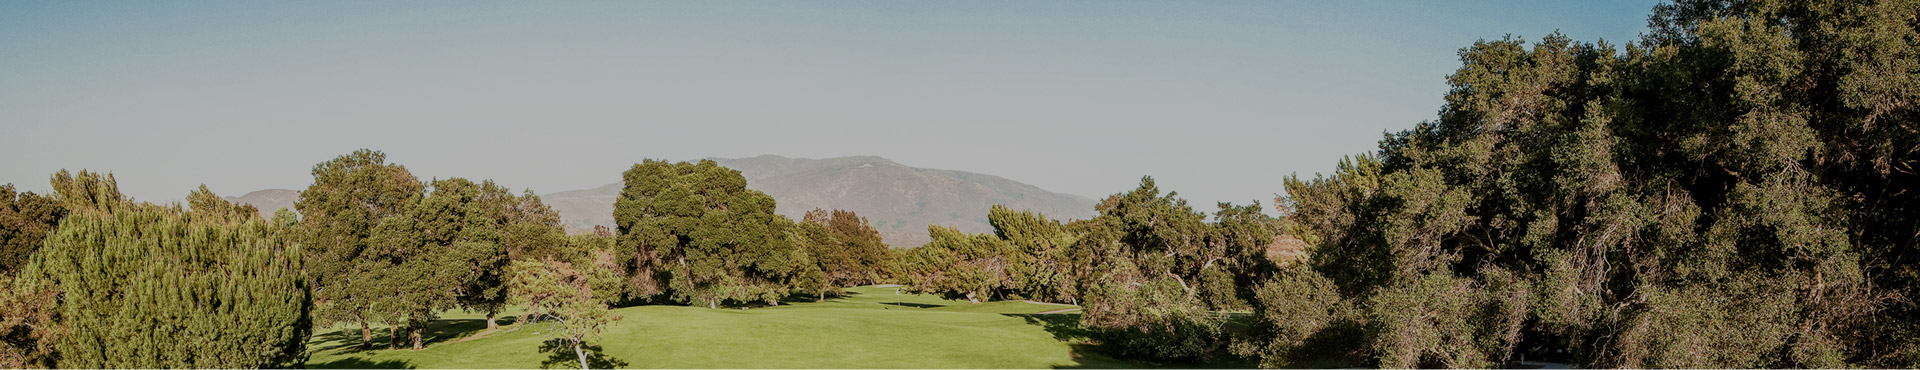 golf course with mountain backdrop